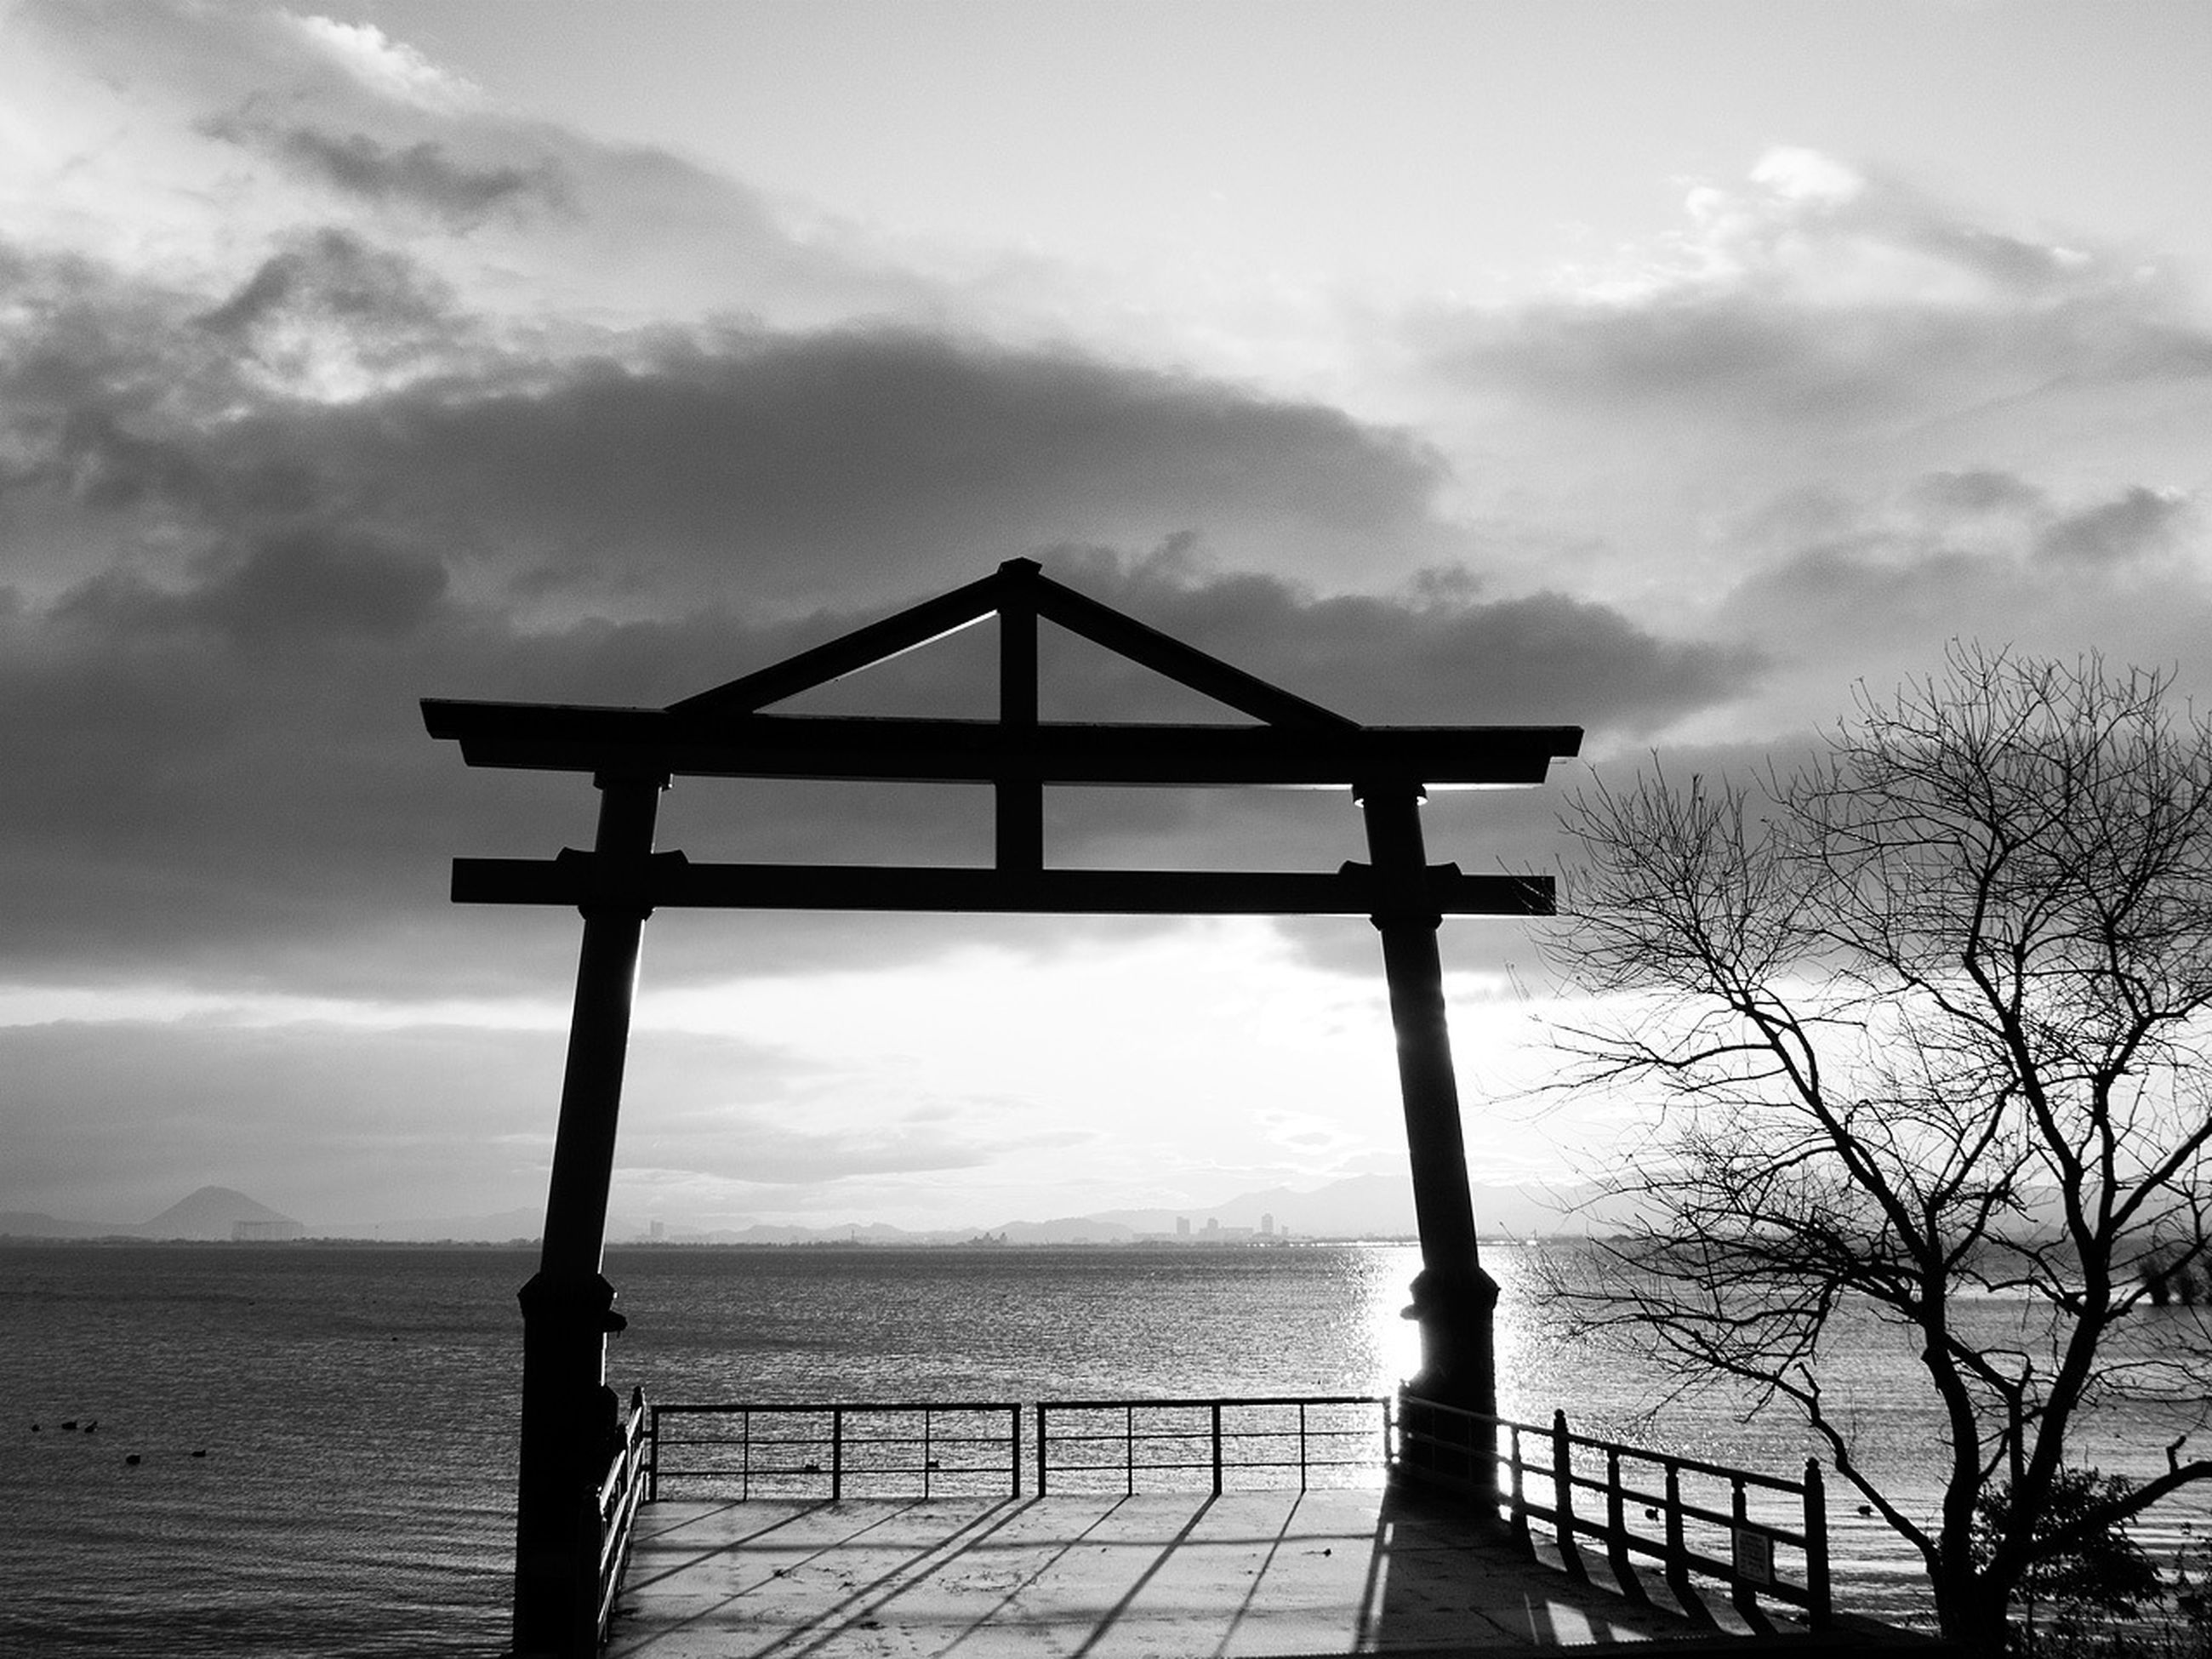 sky, water, tranquility, sea, cloud - sky, tranquil scene, scenics, silhouette, horizon over water, nature, beauty in nature, pier, cloud, wood - material, cloudy, gazebo, idyllic, sunset, railing, no people